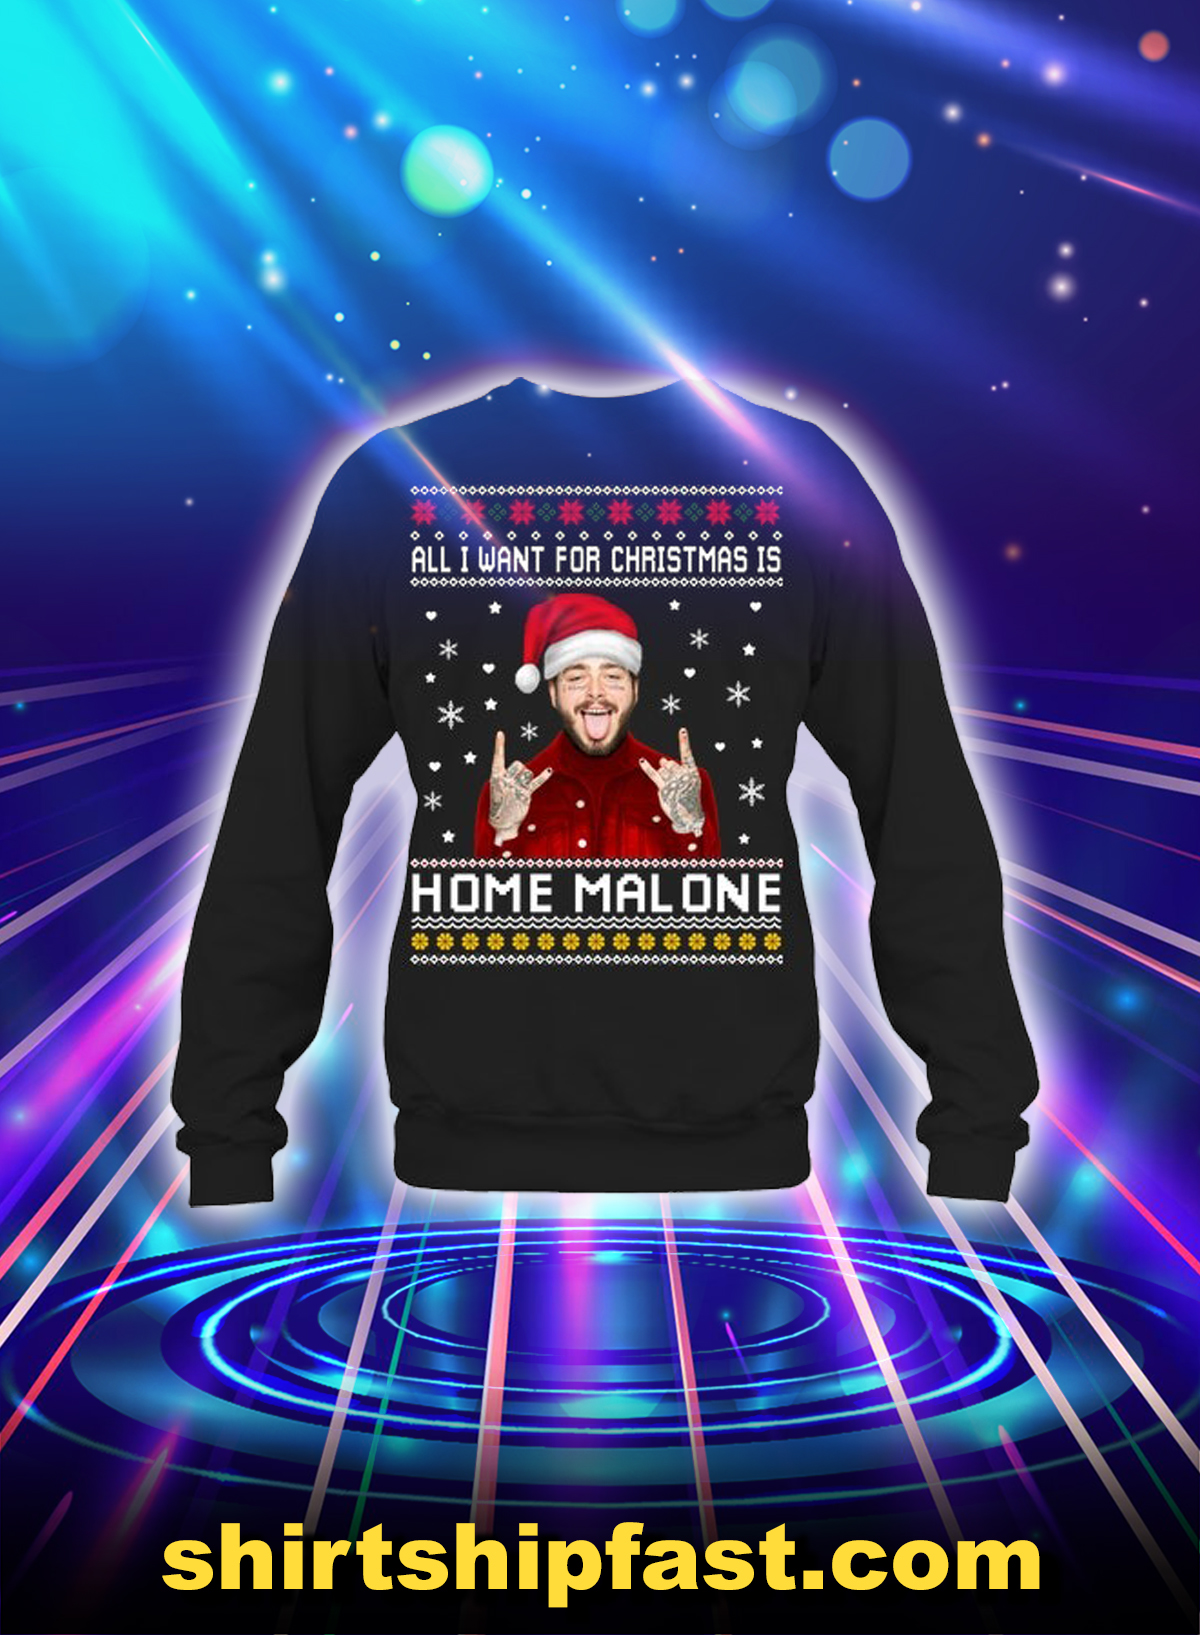 All i want for christmas is home malone sweatshirt